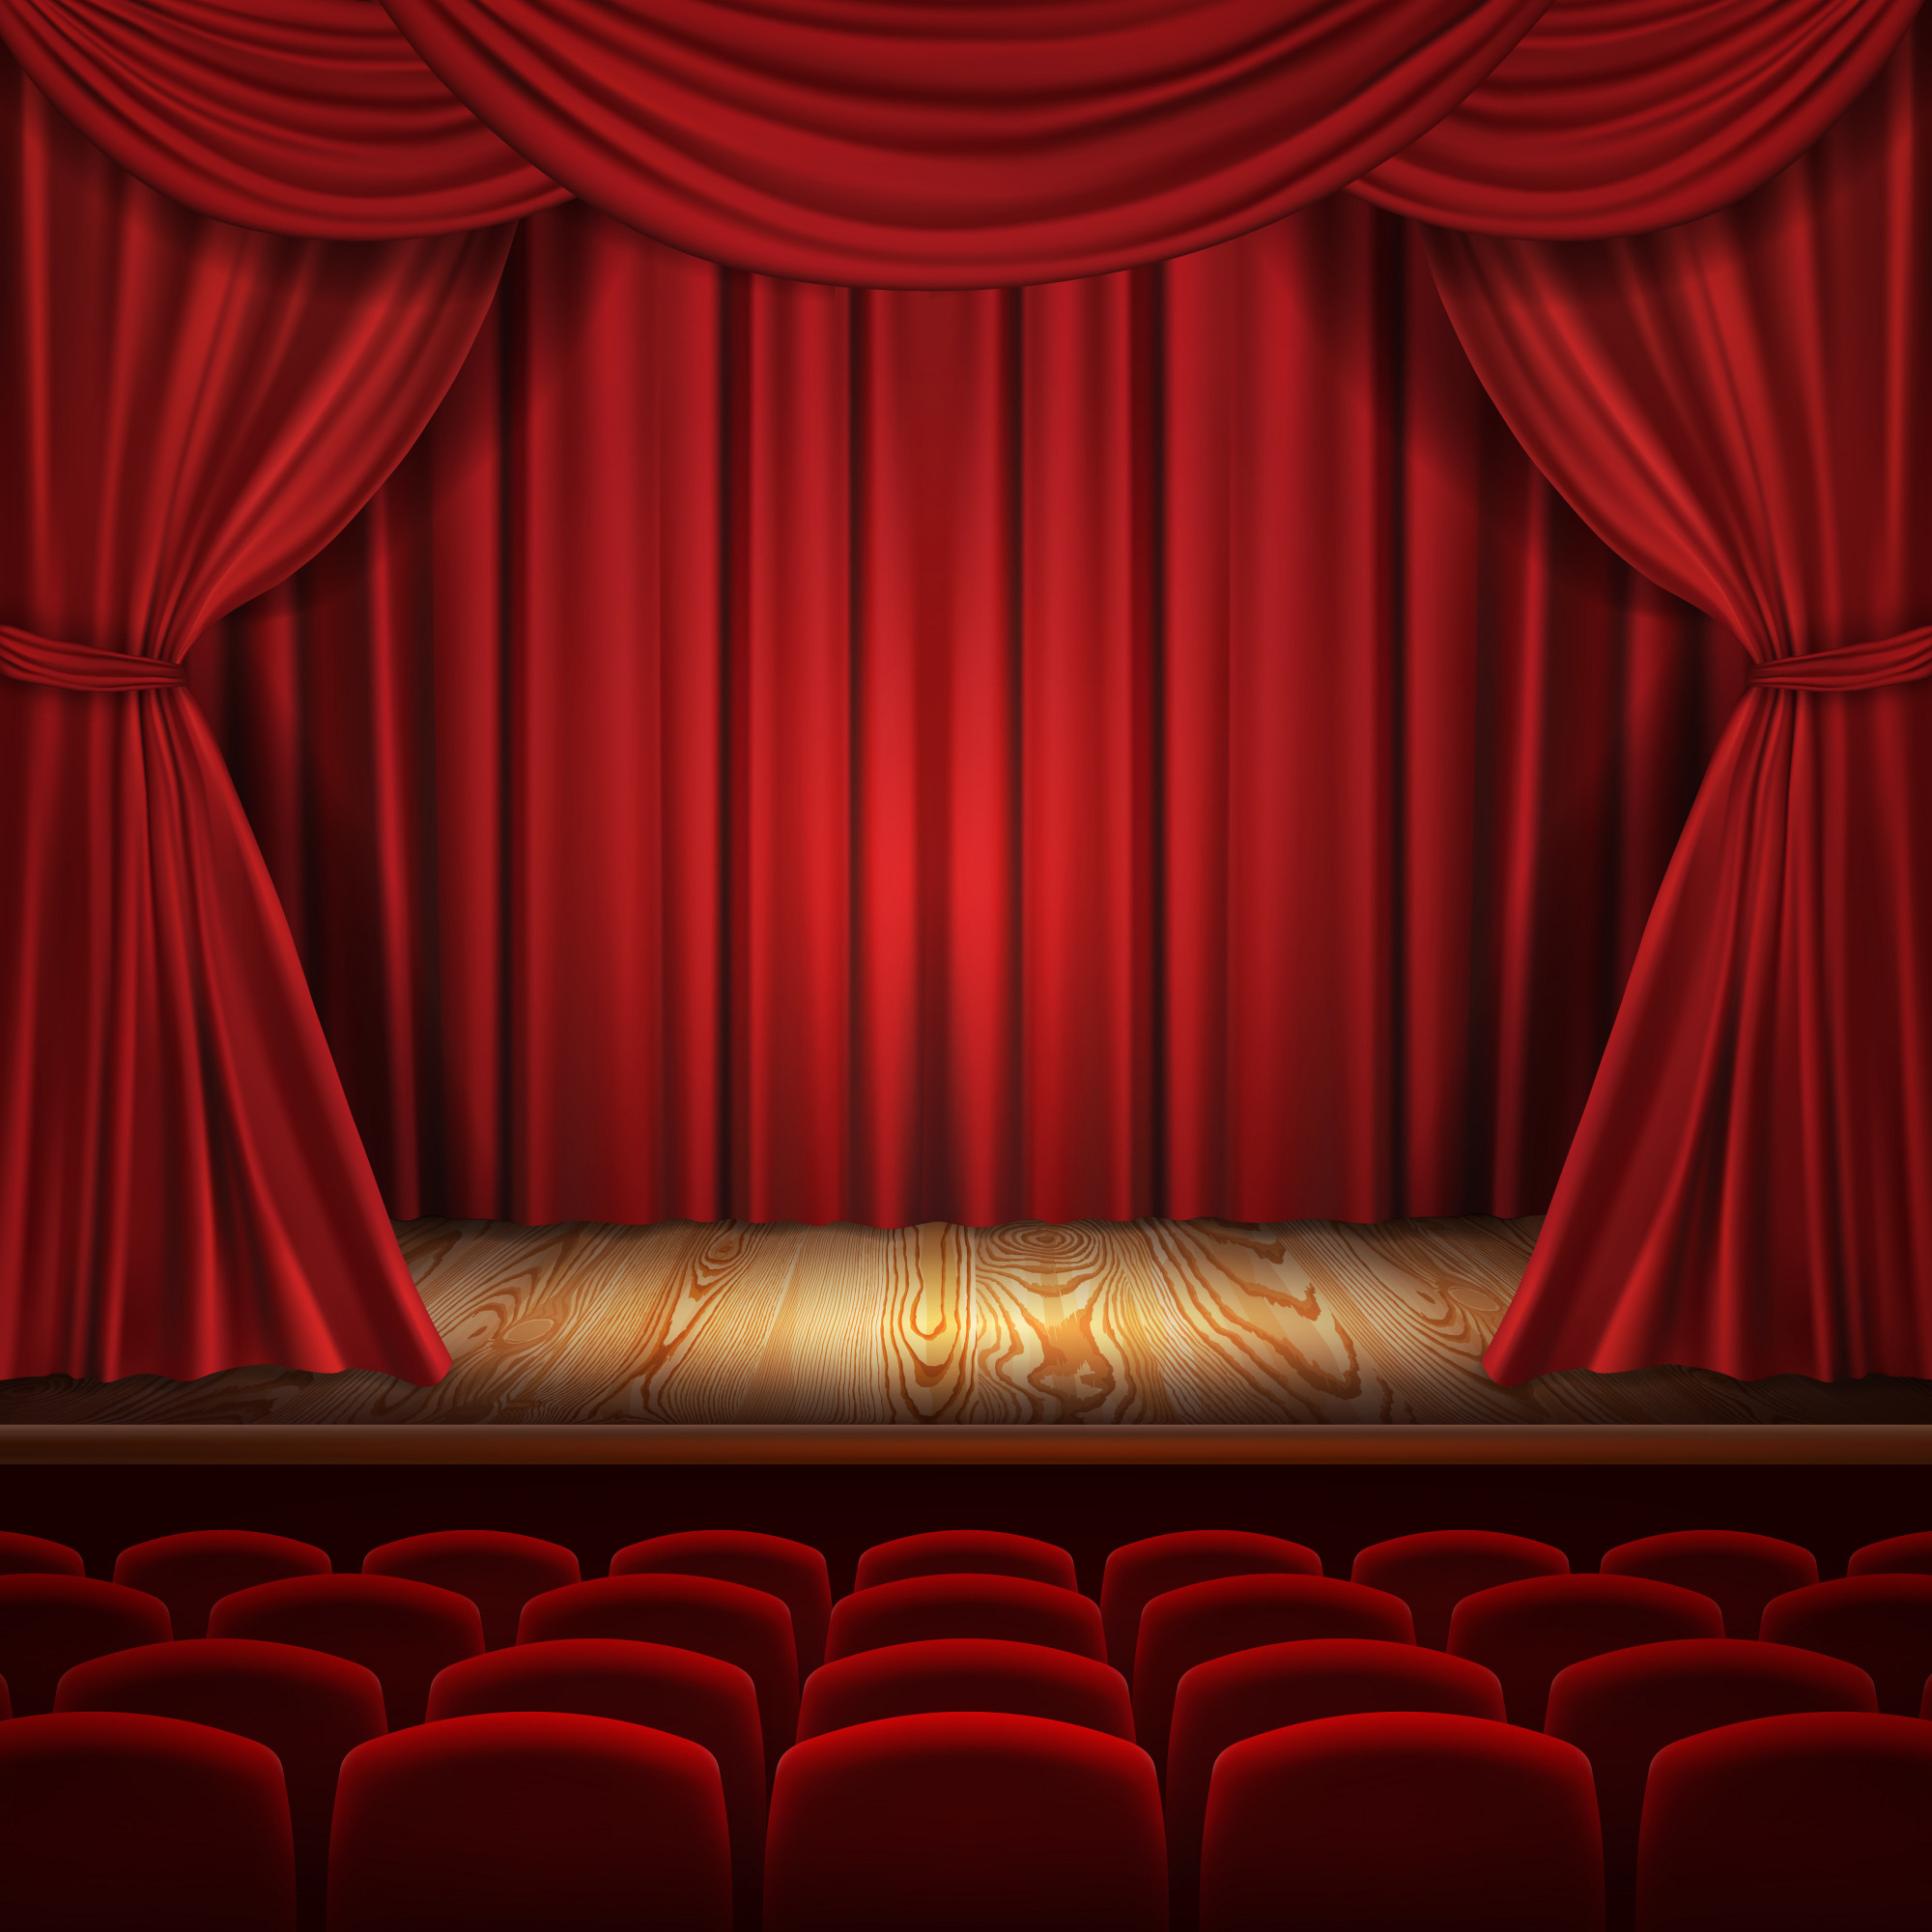 Theater concept, realistic luxurious red velvet curtains with theatre scarlet seats